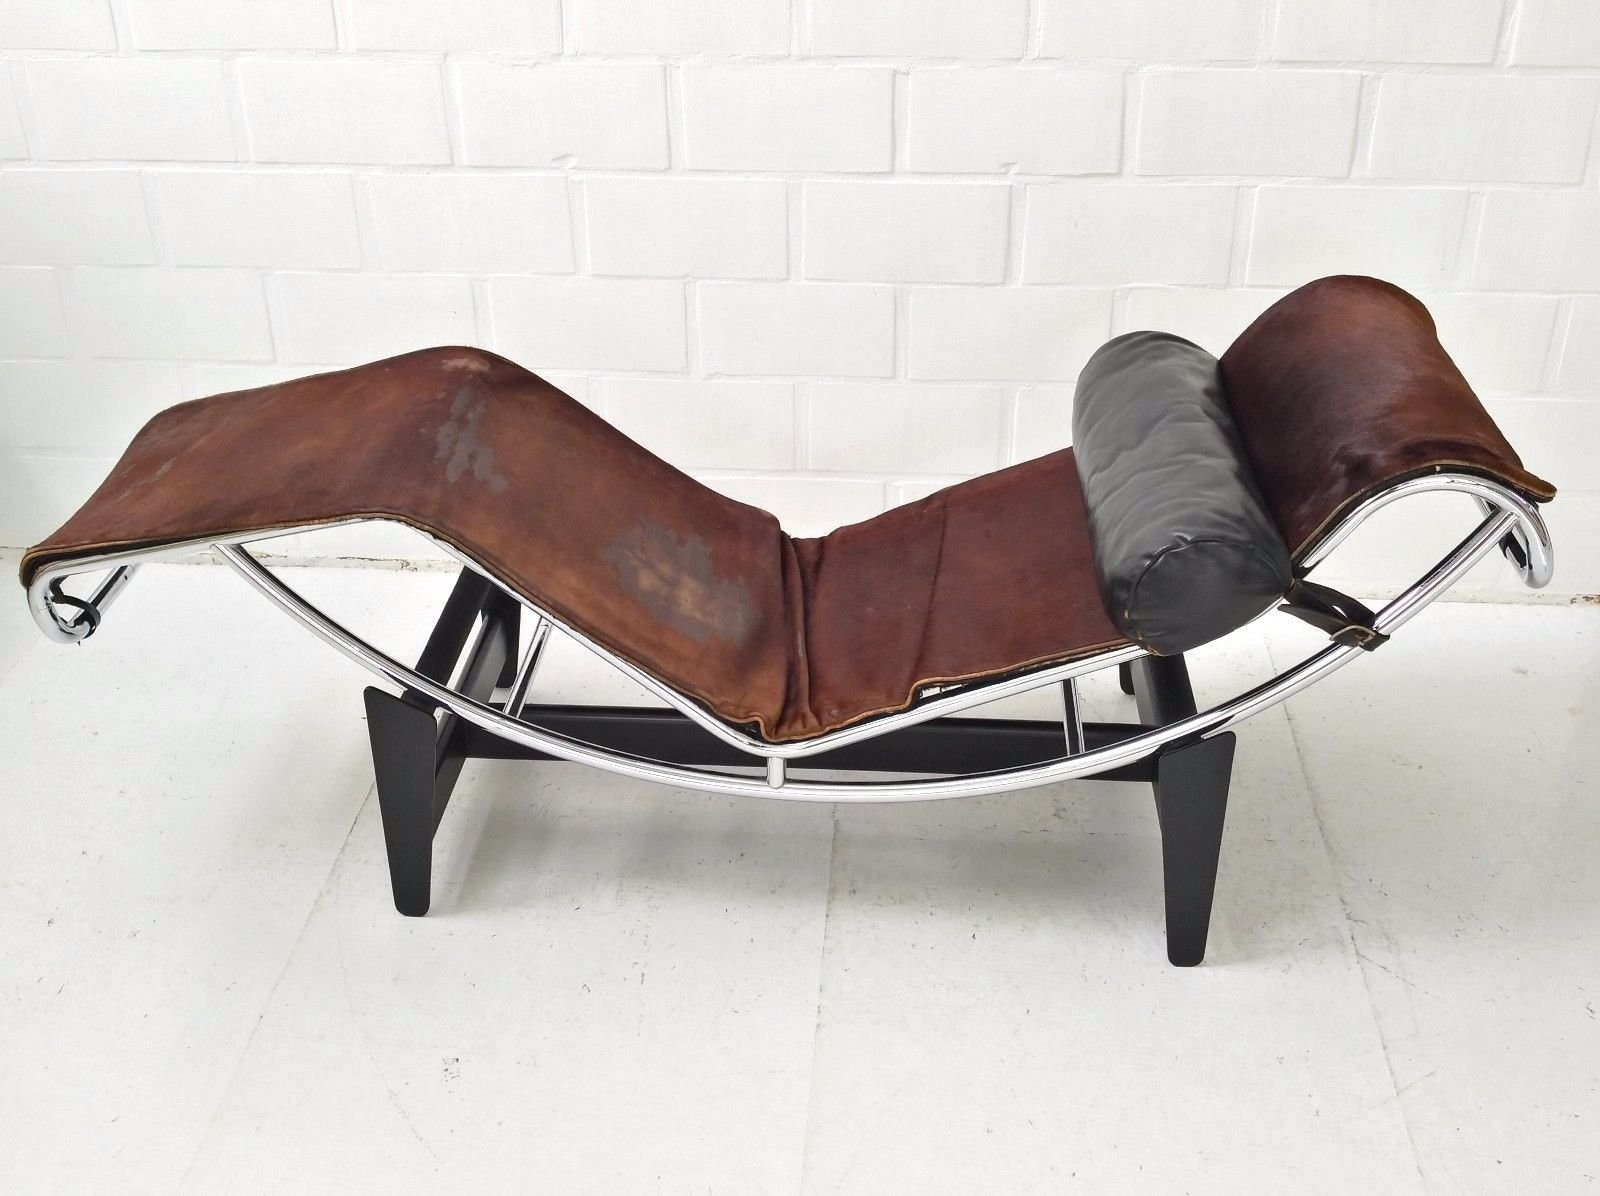 Lc4 chaise longue by le corbusier charlotte perriand for Chaise longue de le corbusier